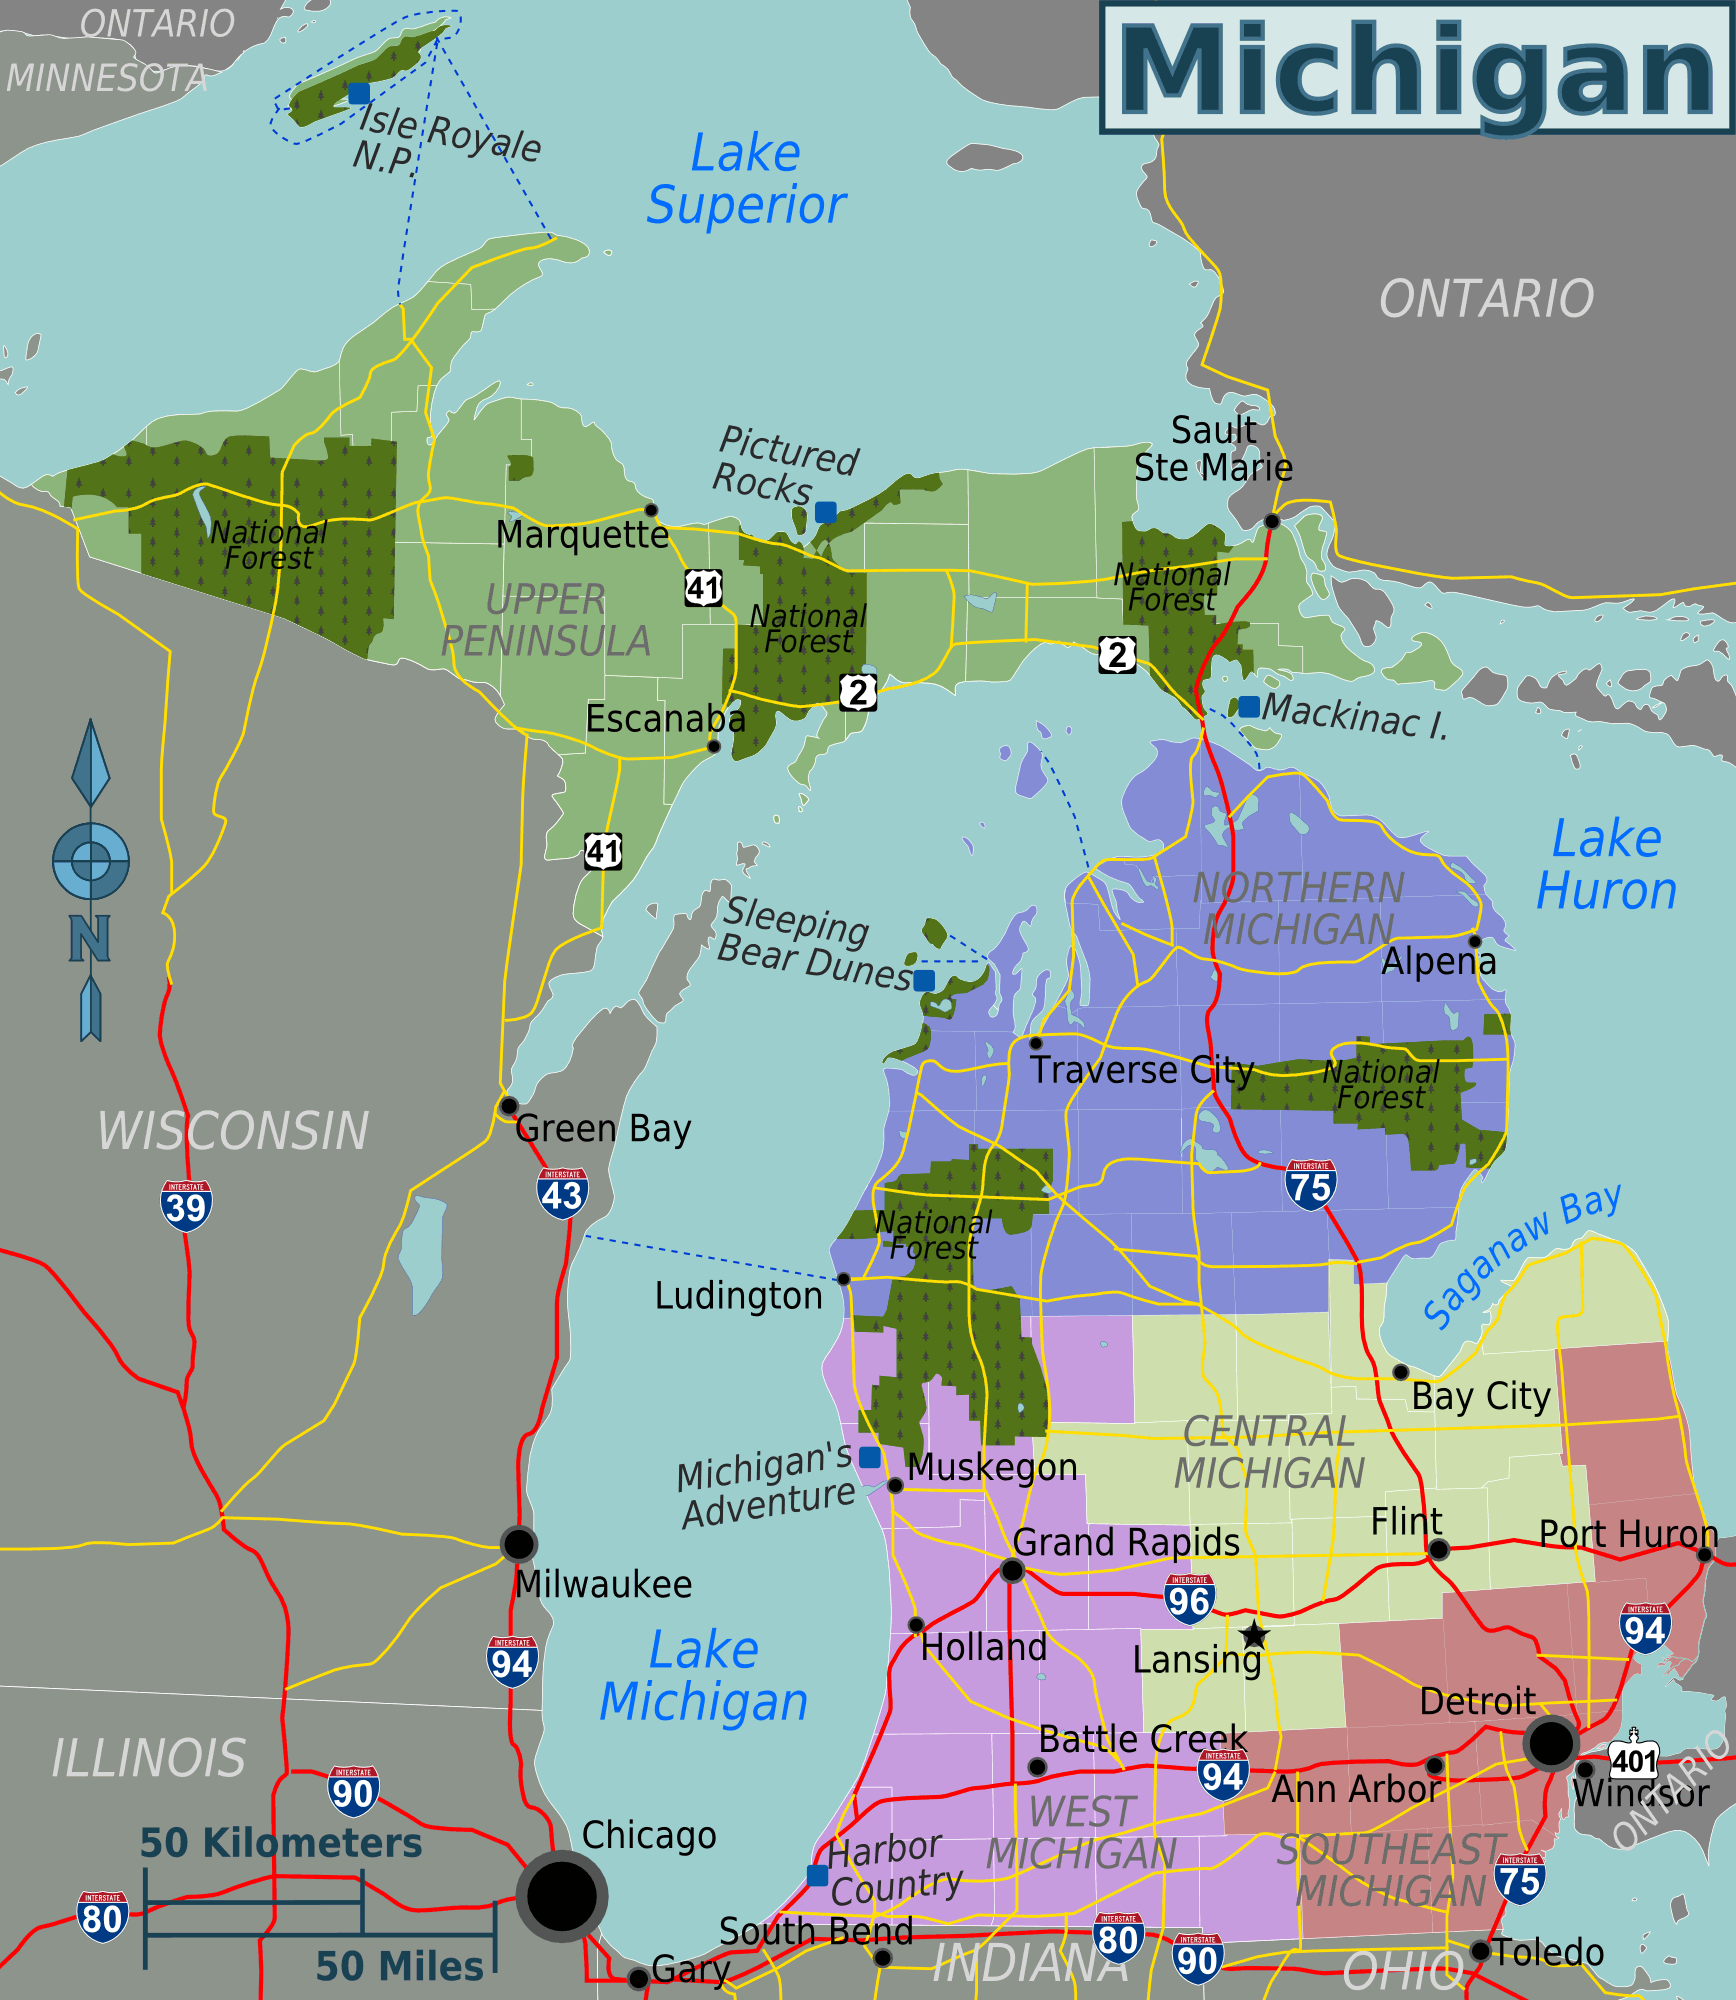 Michigan Regions Map • Mapsof.net